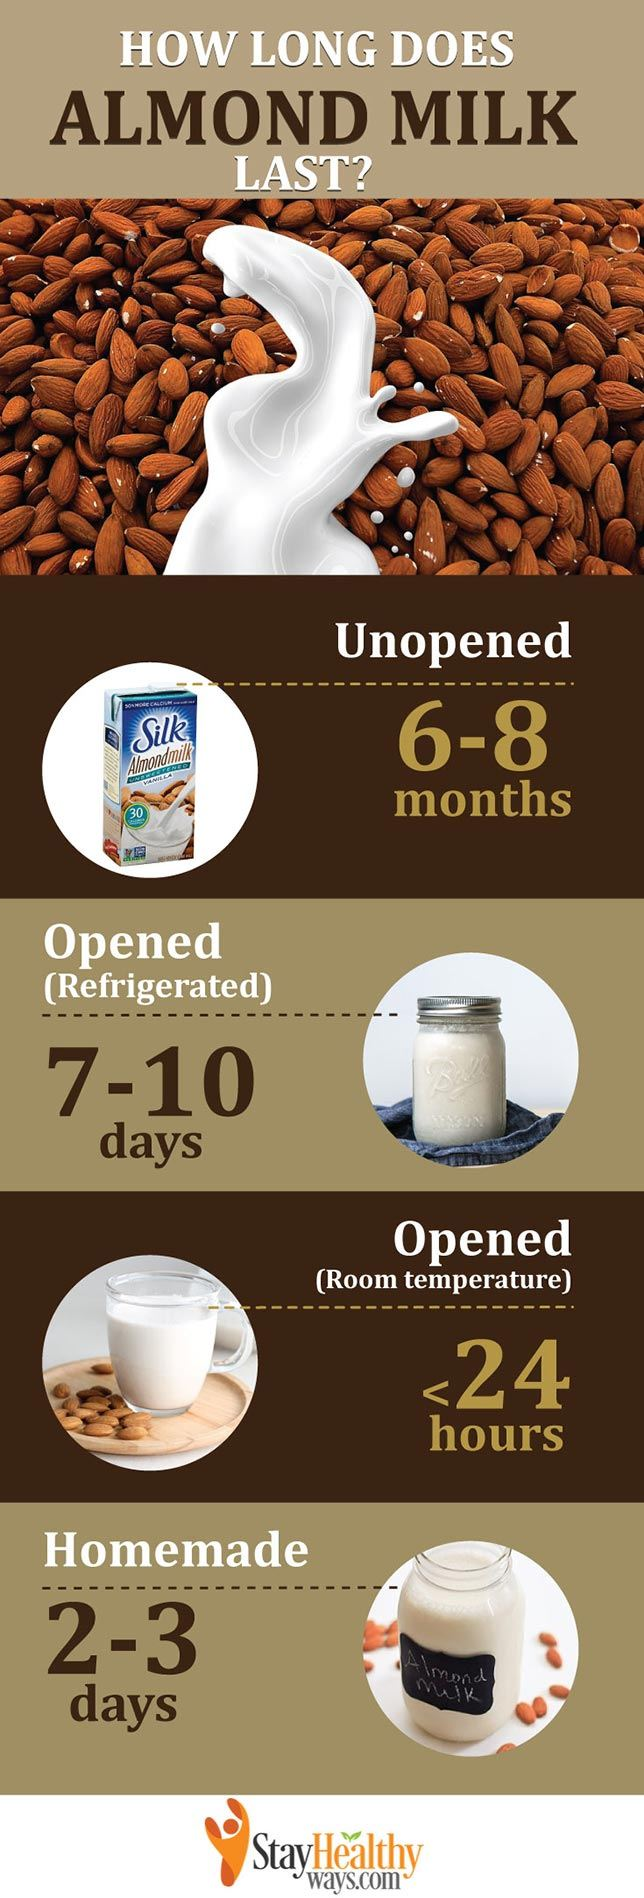 how long does almond milk last infographic